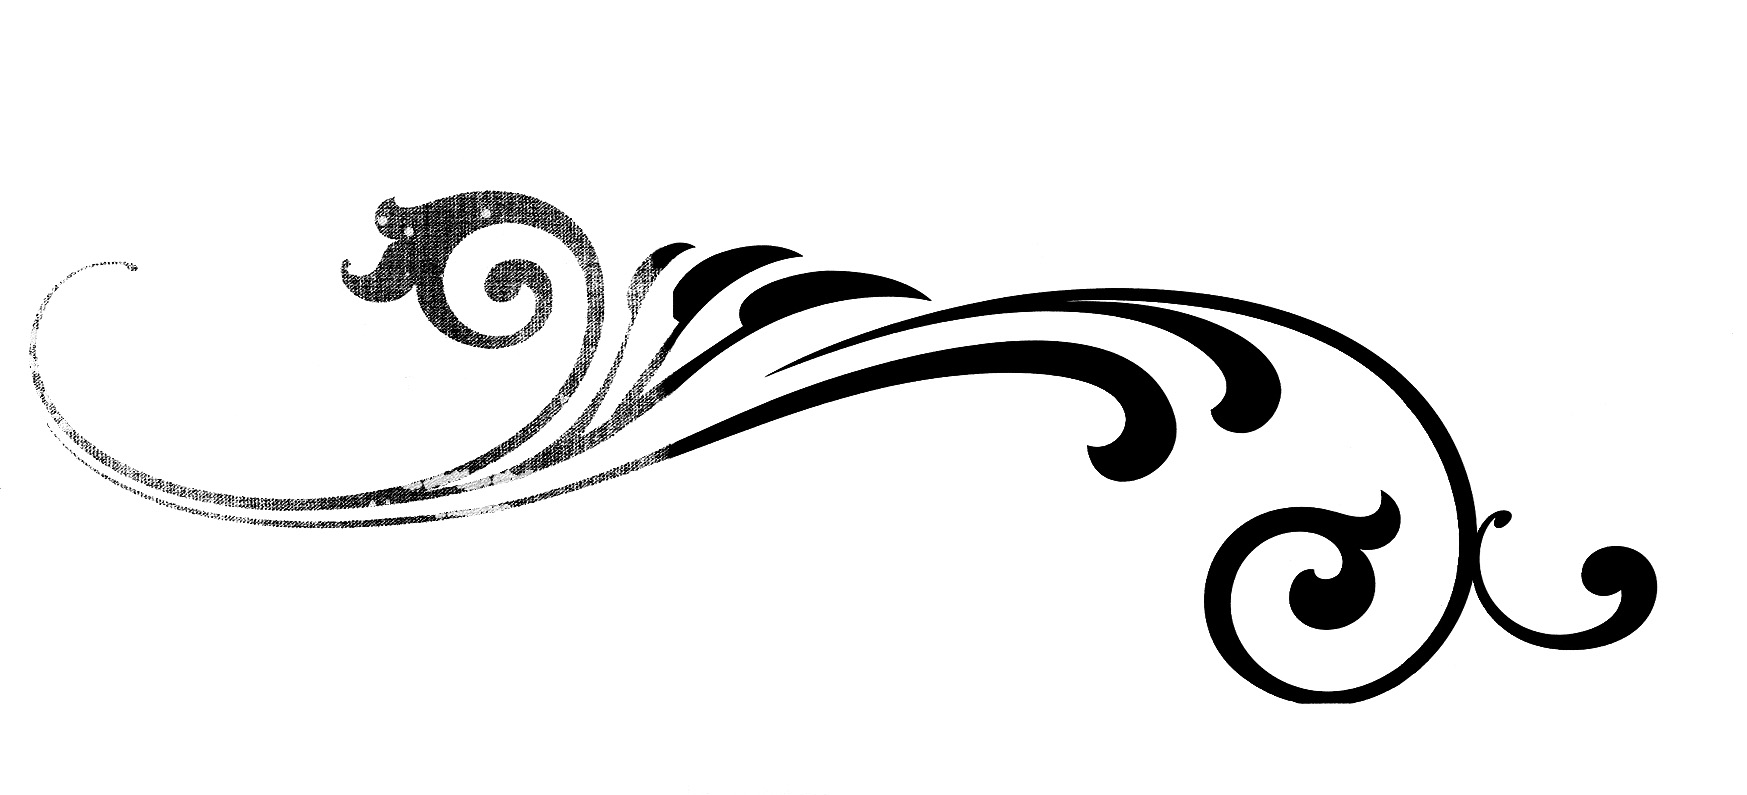 Free Vector Flourishes - ClipArt Best